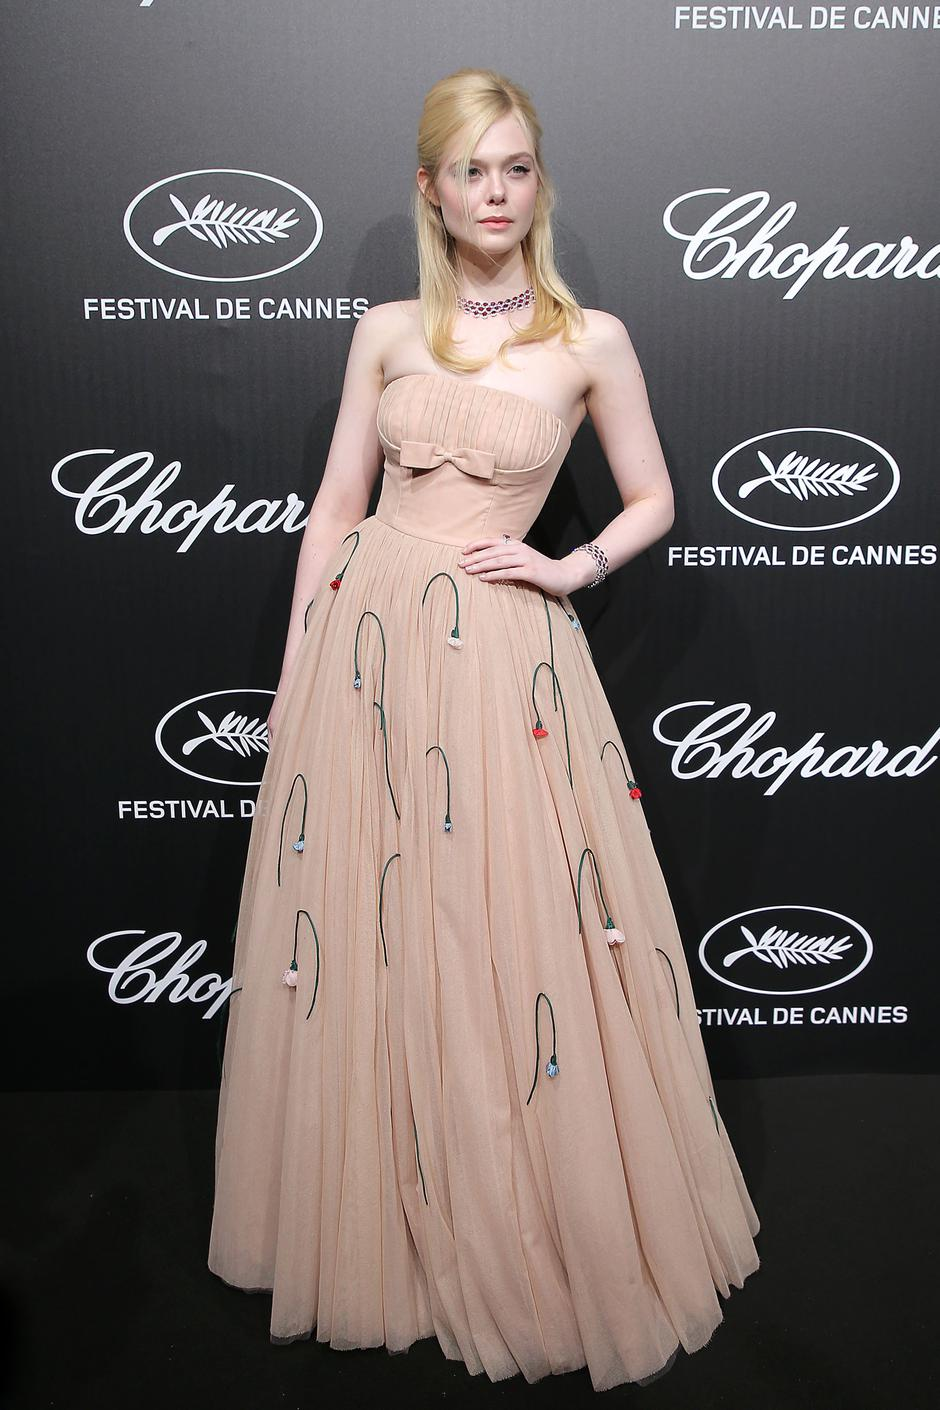 72th Film Festival of Cannes - Photocall of Chopard Trophy held at Agora in Cannes.   Autor: Profimedia